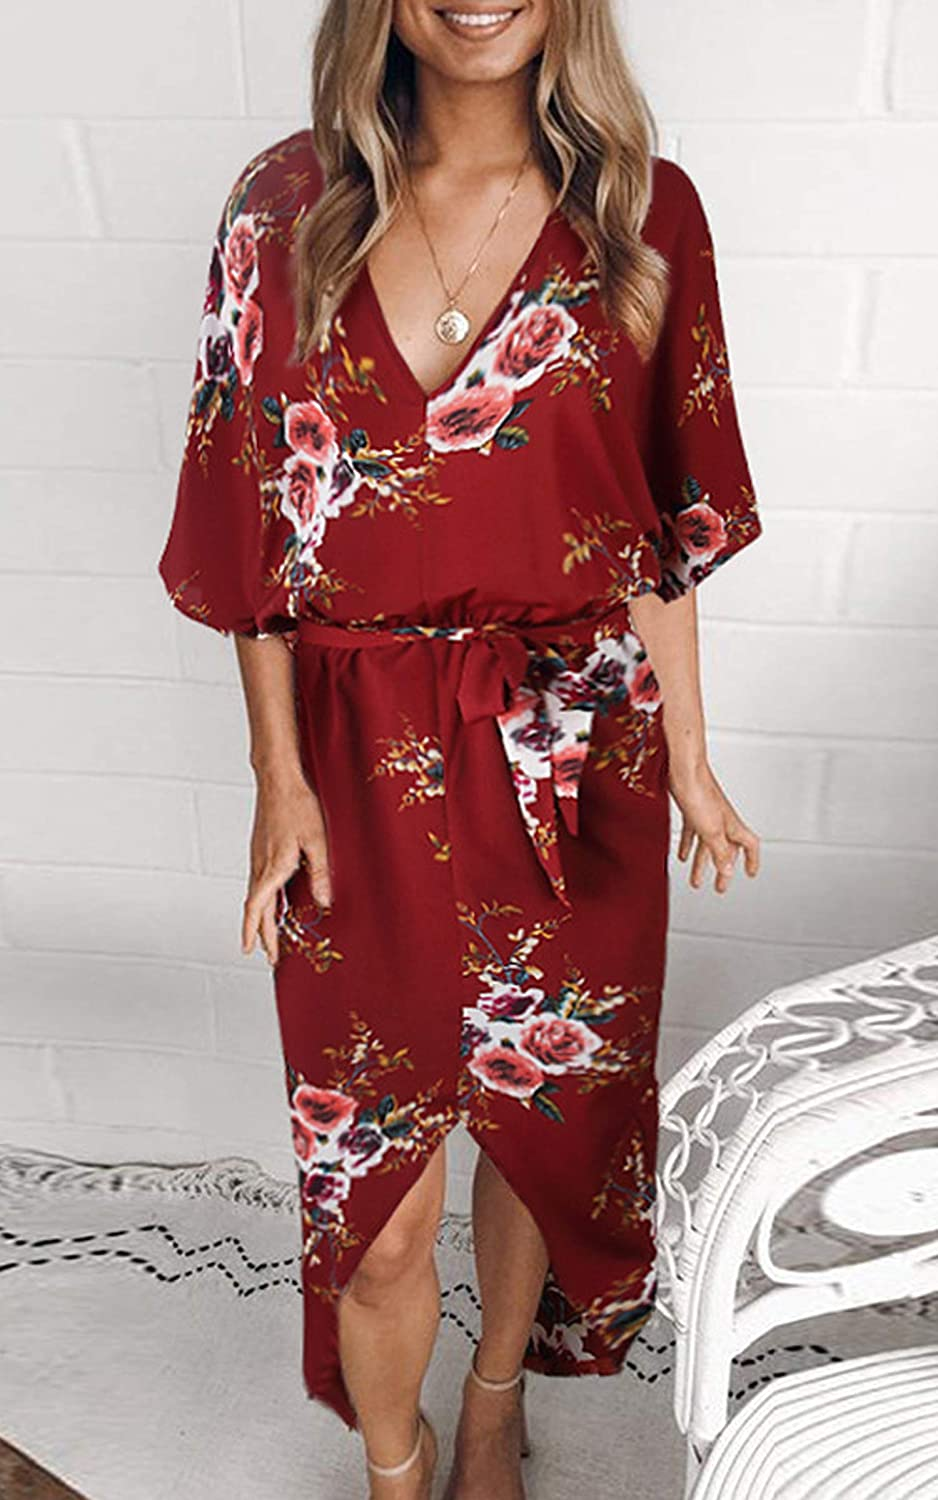 e44a319ca545 ECOWISH Womens Dresses Summer Casual V-Neck Floral Print Geometric Pattern  Belted Dress EH509 larger image